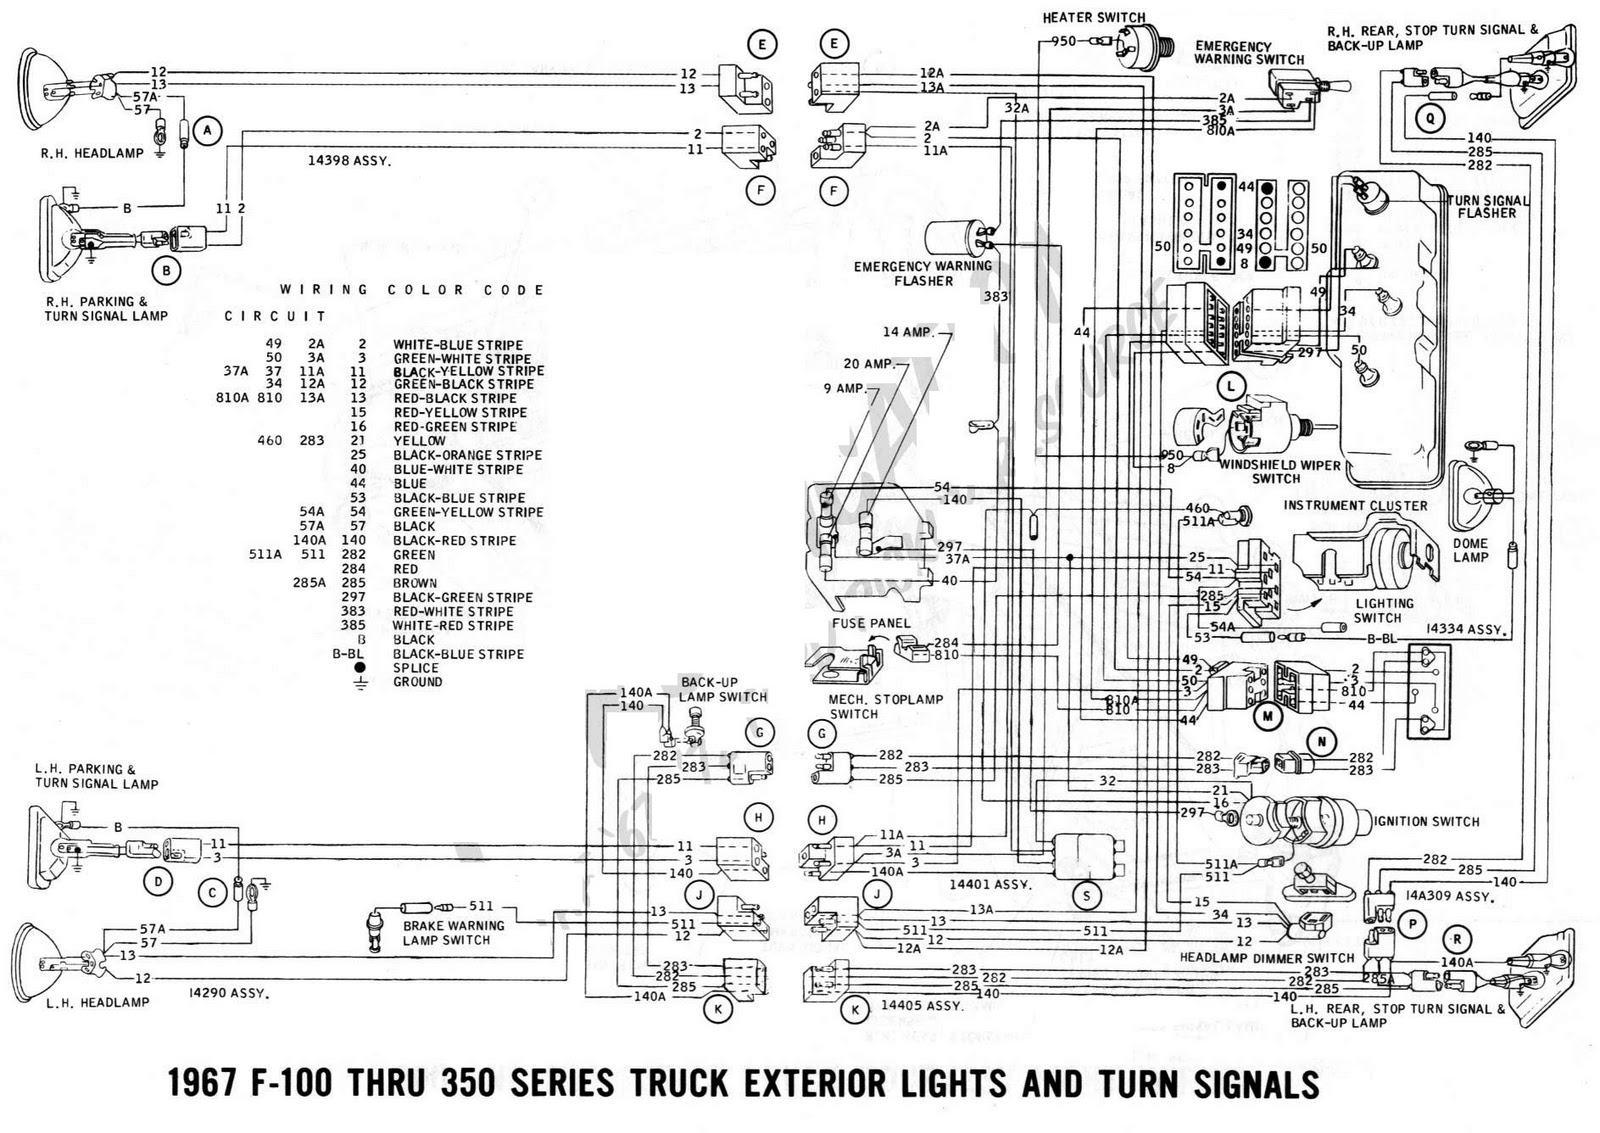 Wiring Diagram For Signal Stat 900 – The Wiring Diagram ... on willys wiring diagram, mgb wiring diagram, volkswagen wiring diagram, grumman llv wiring diagram, morris minor wiring diagram, bomag wiring diagram, dodge truck wiring diagram, chrysler dodge wiring diagram, acura wiring diagram, avanti wiring diagram, can am wiring diagram, jawa wiring diagram, merkur wiring diagram, peterbilt trucks wiring diagram, international truck wiring diagram, puch wiring diagram, lexus wiring diagram, karmann ghia wiring diagram, corvette wiring diagram,